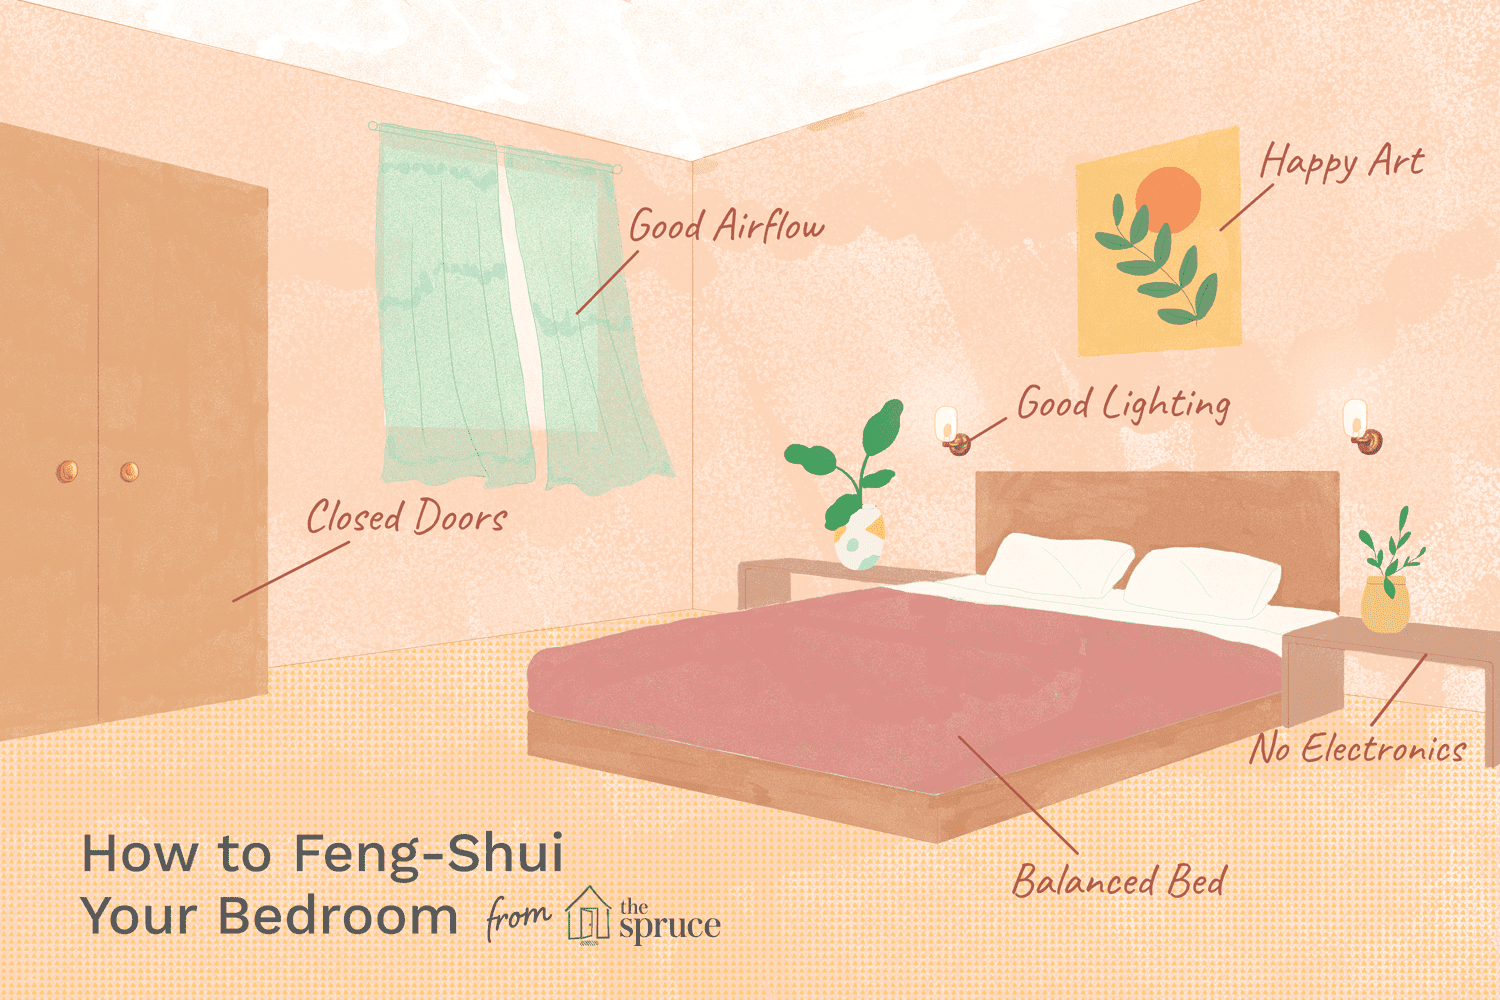 Feng Shui Your Bedroom With These Nine Easy Steps in 2020